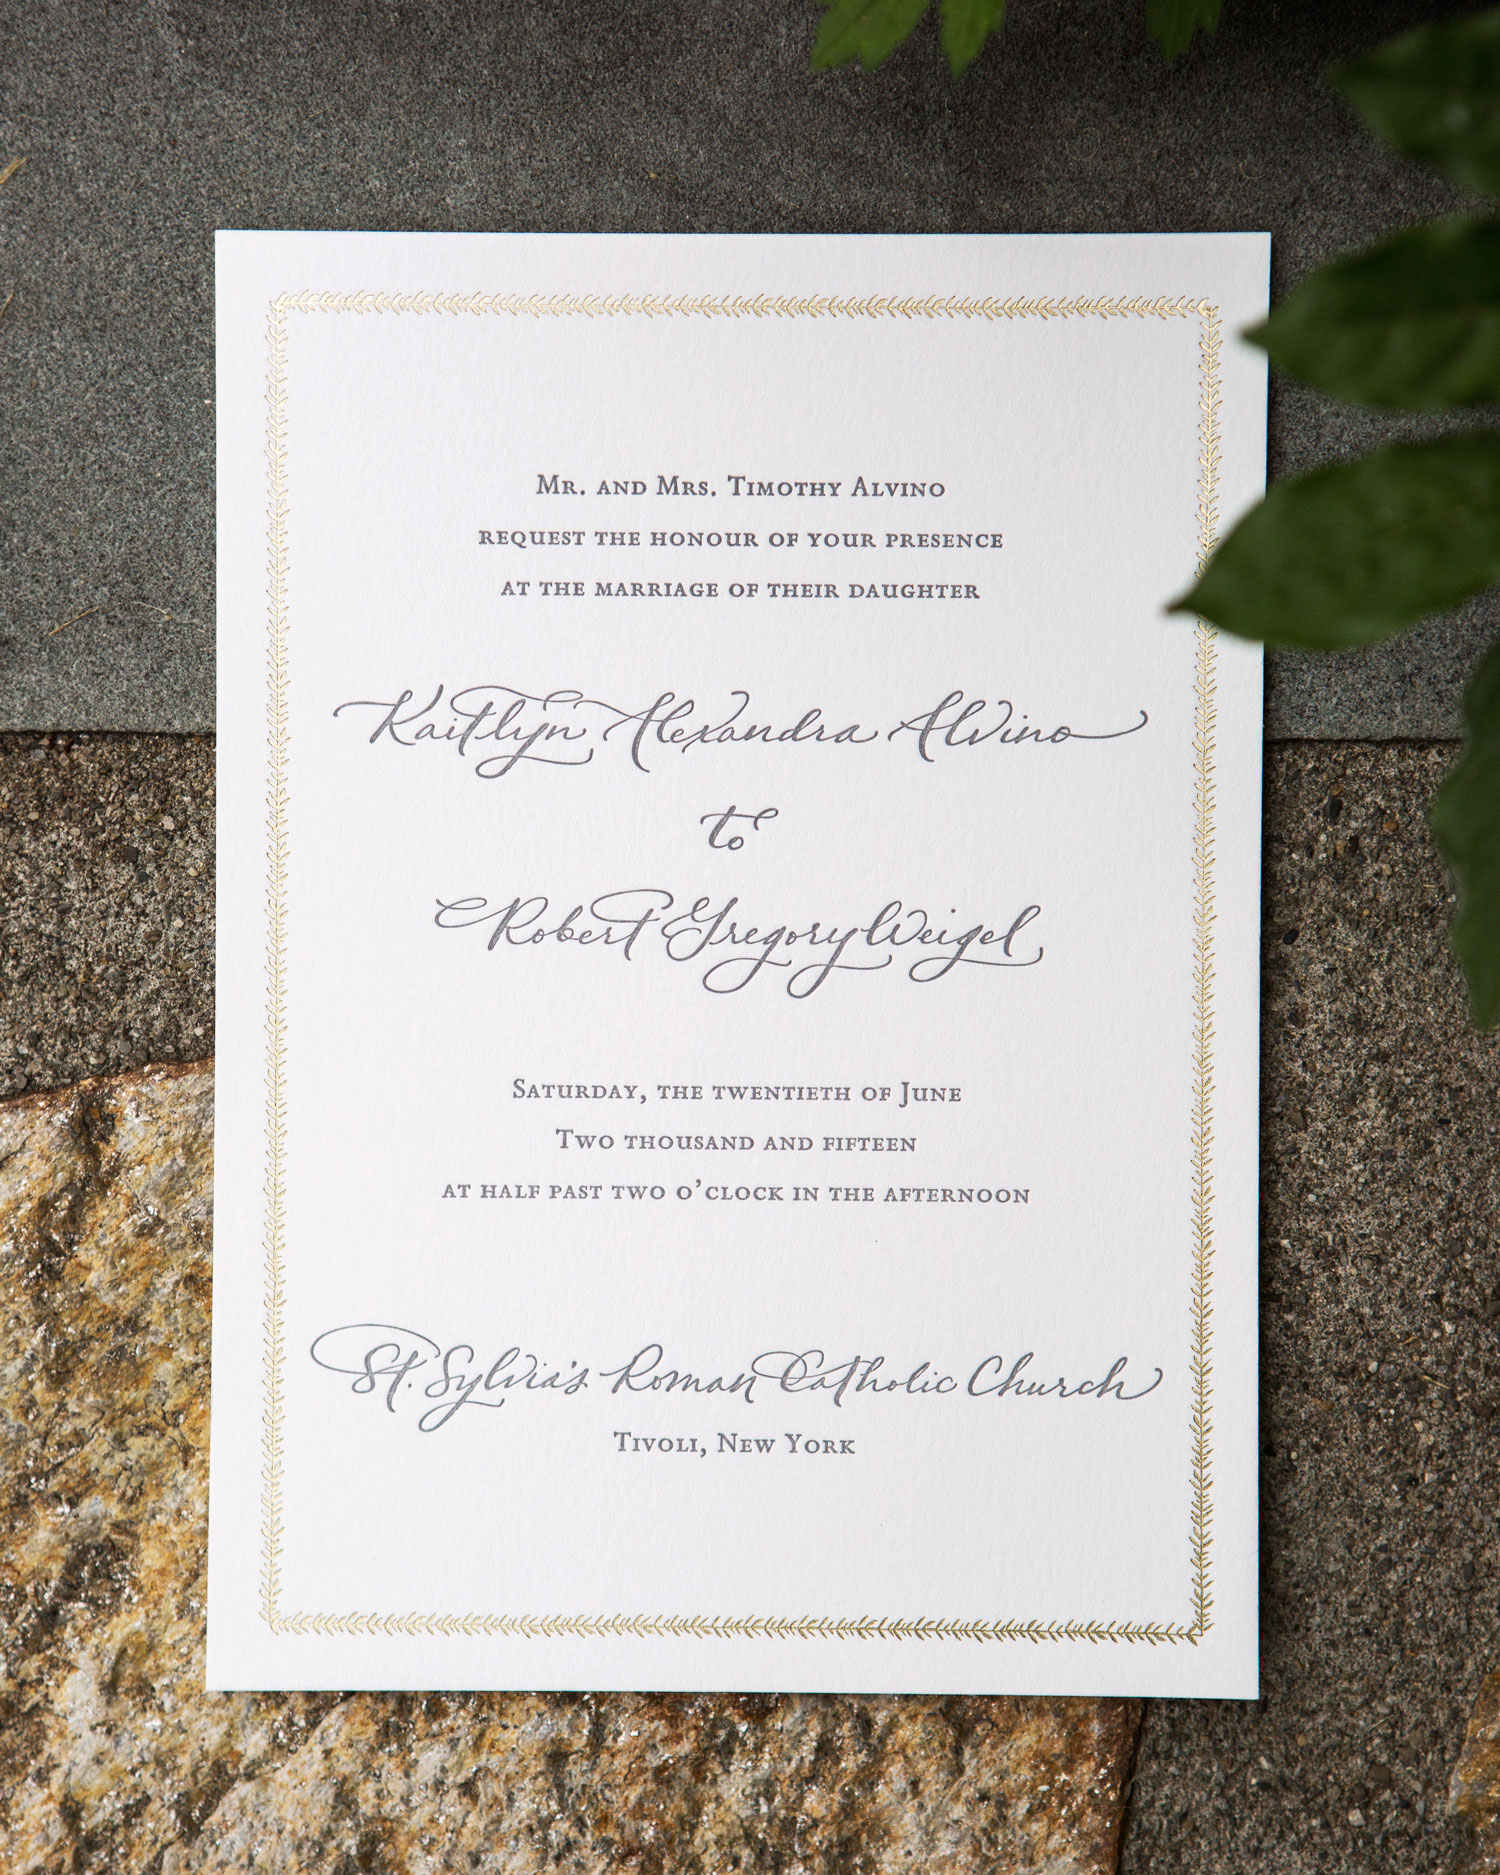 kaitlyn-robert-wedding-invitation-0214-s112718-0316.jpg